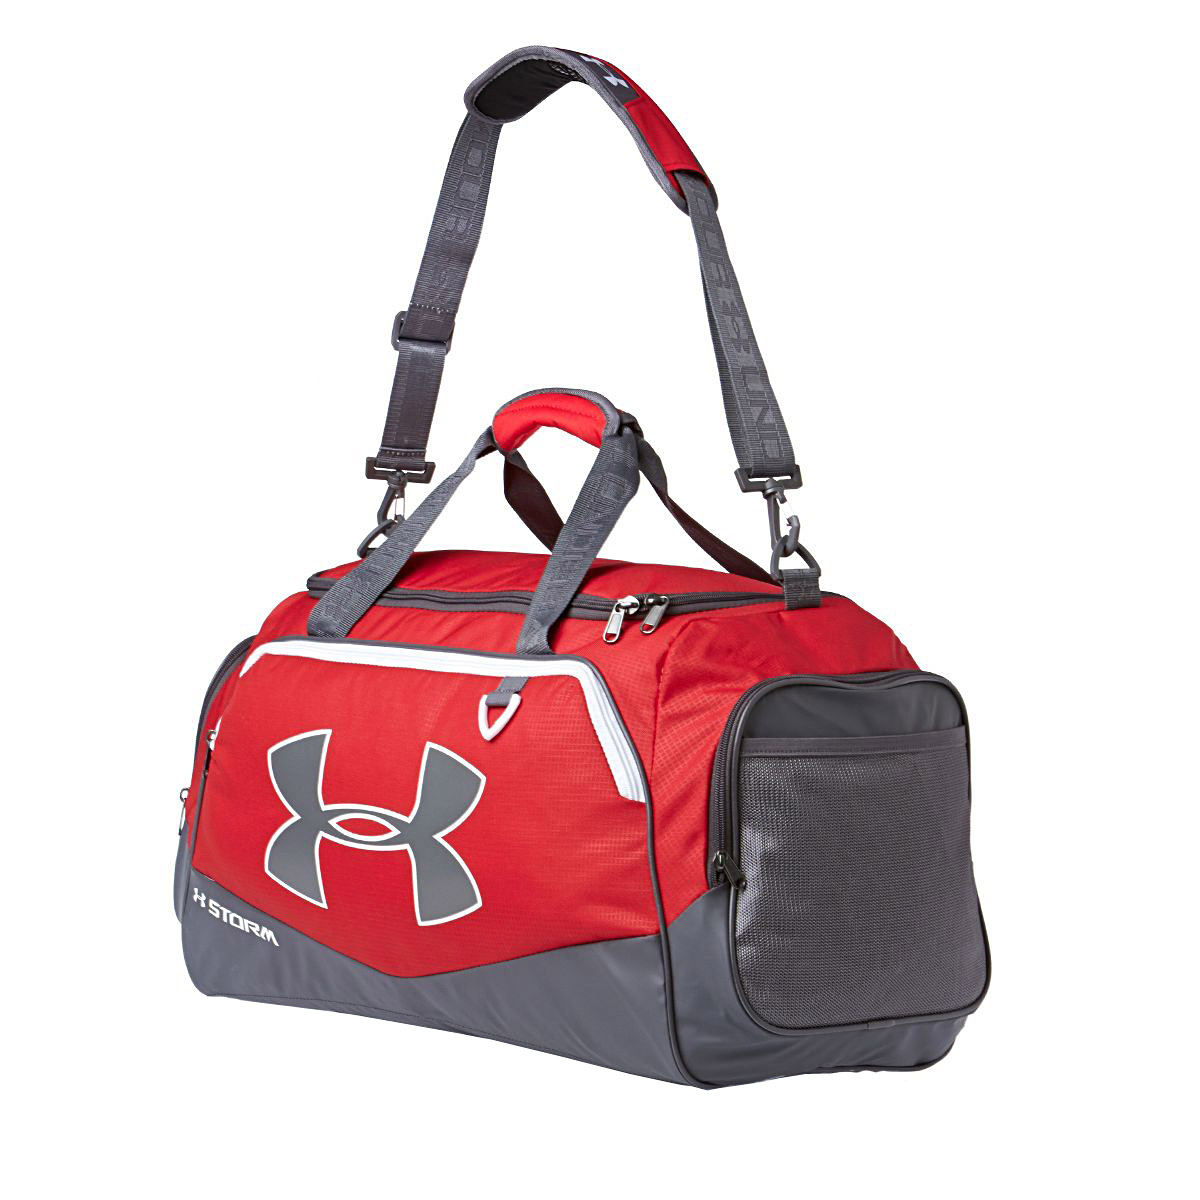 c3e076a32 under armour large duffle bag cheap > OFF32% The Largest Catalog ...